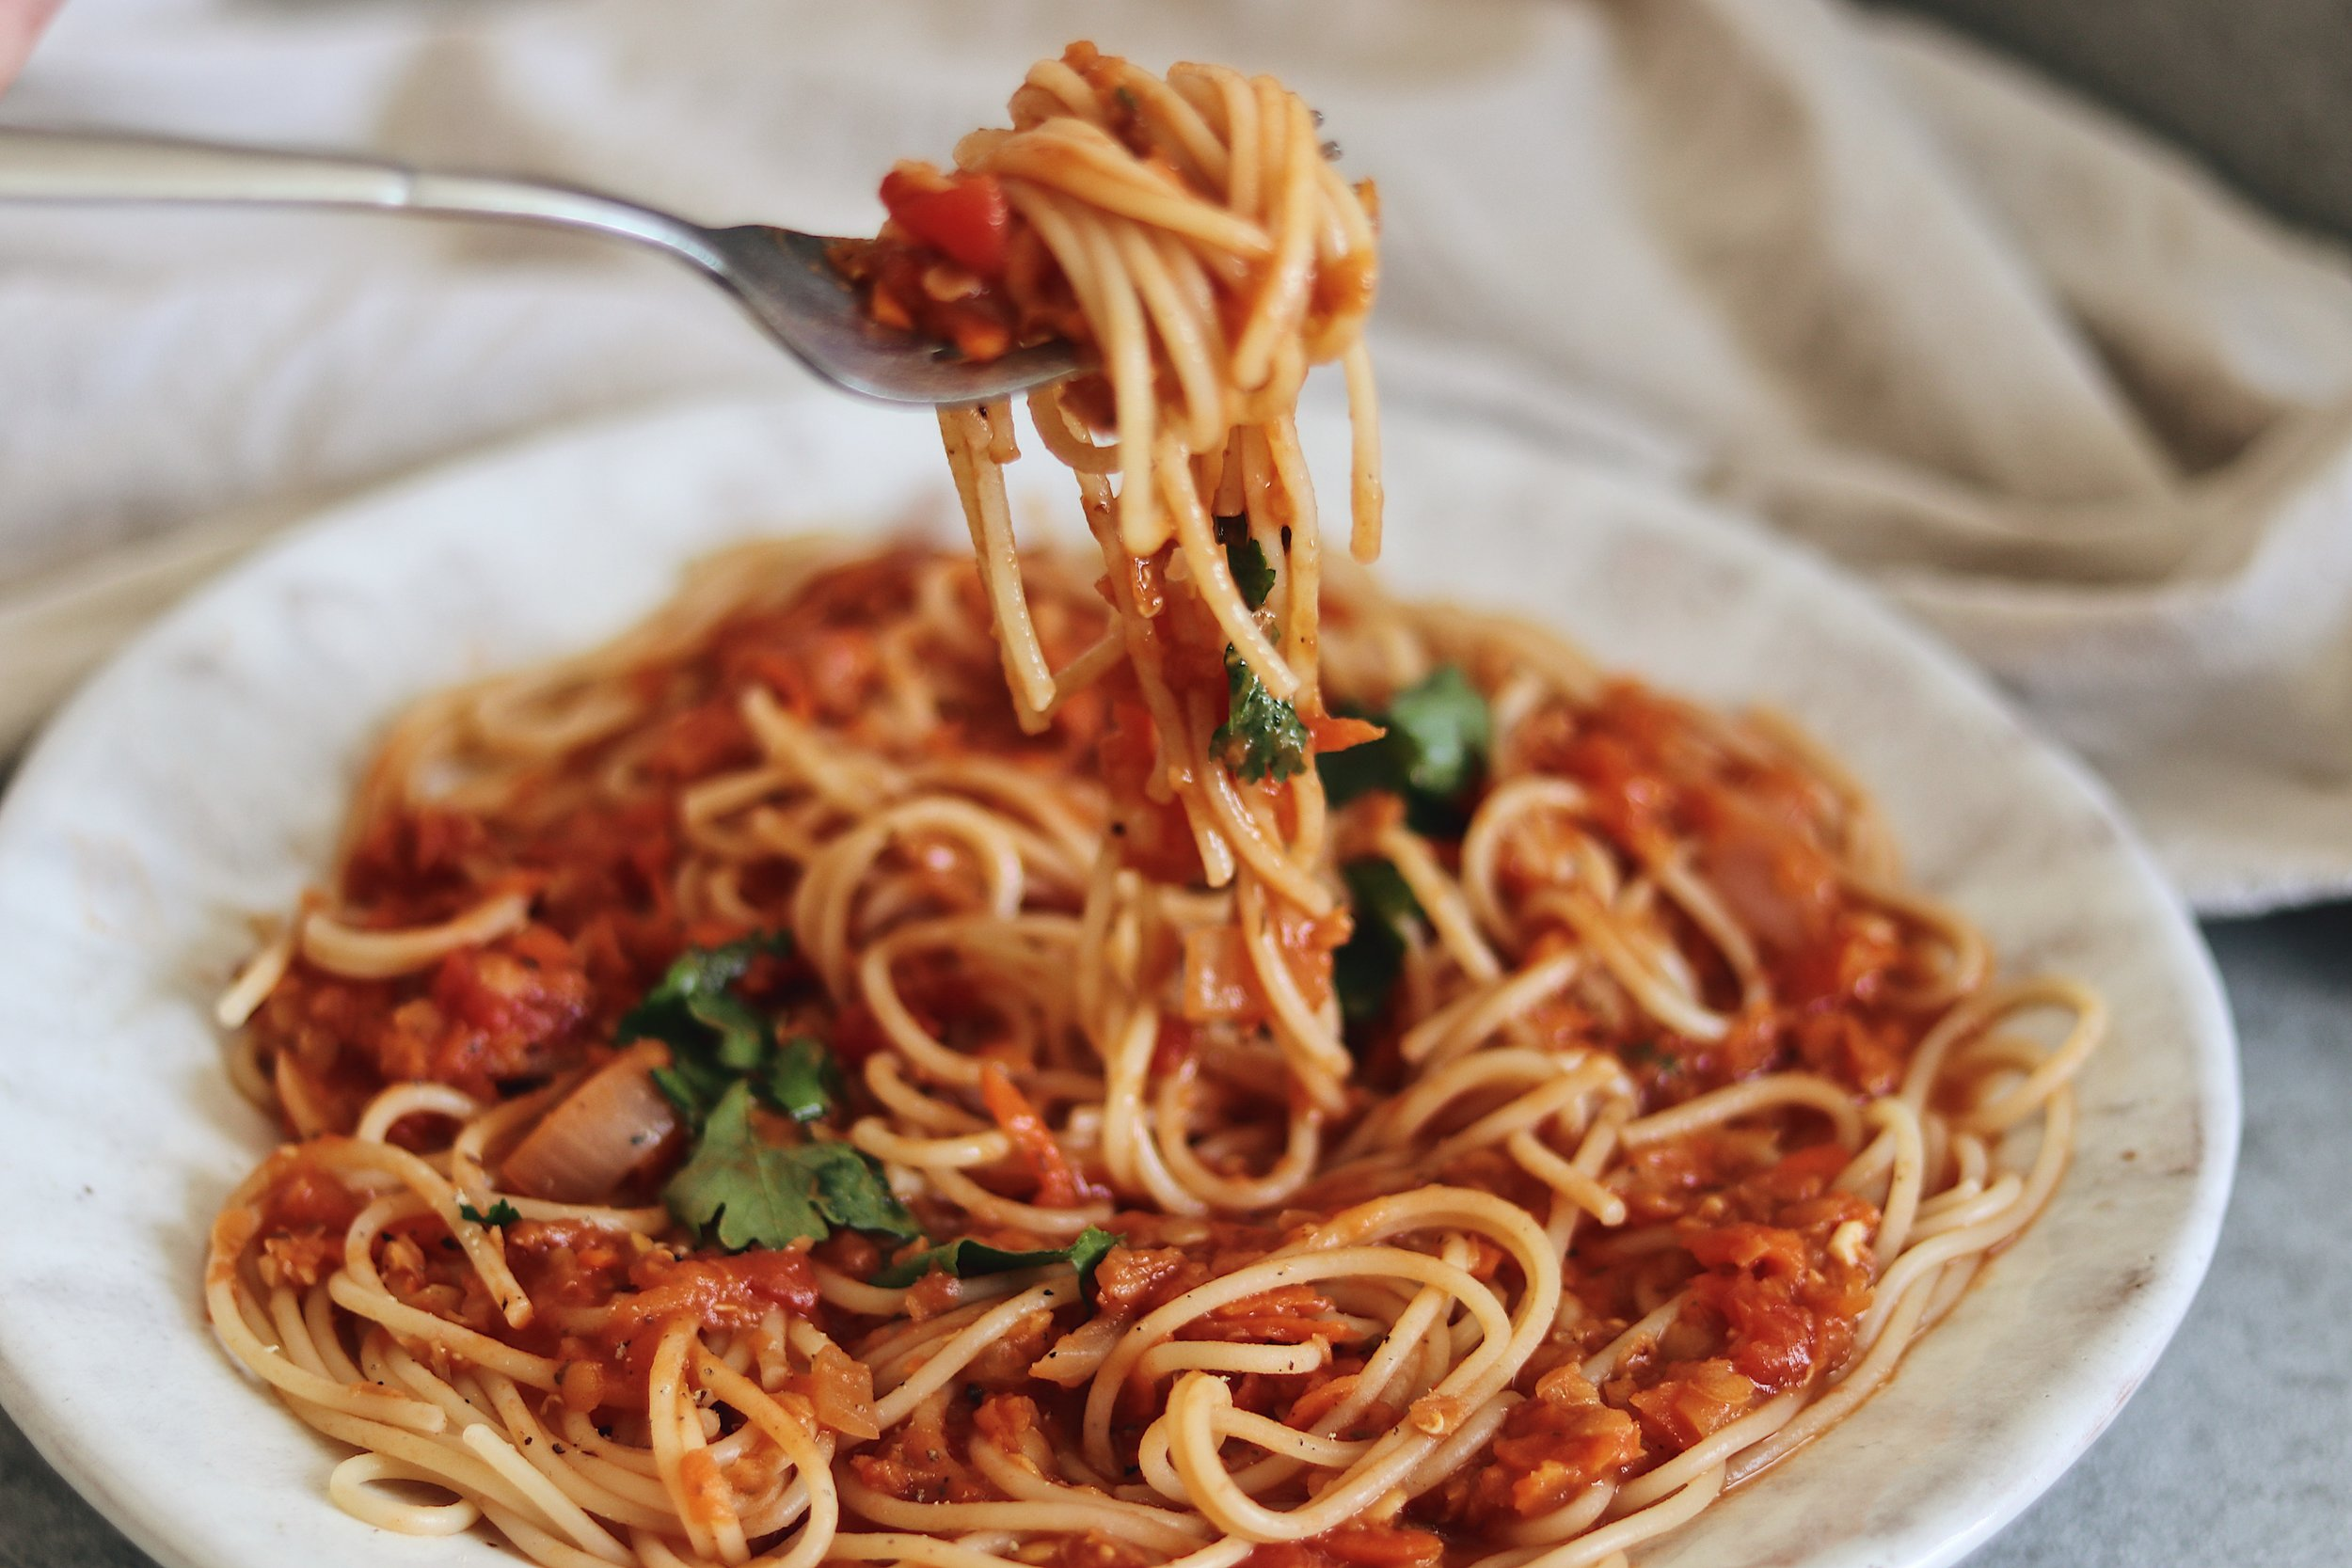 This wholesome and delicious ragu is the perfect easy meal to whip up for family and friends. - prep time 5-10 mins total time 1 hour serves 4-6